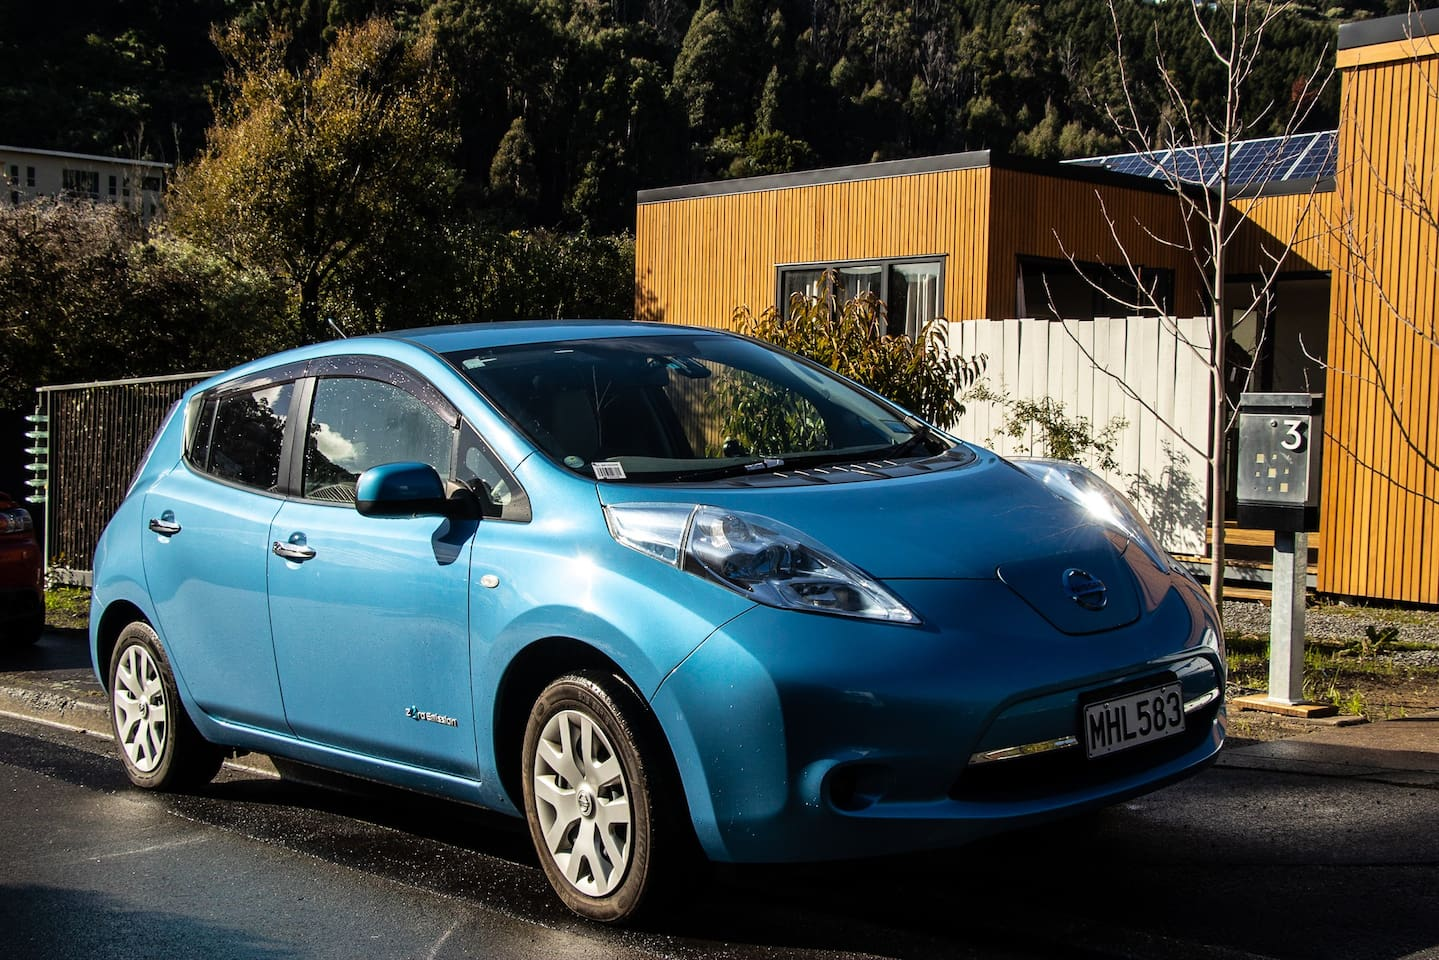 Solar House, electric car and ebikes...